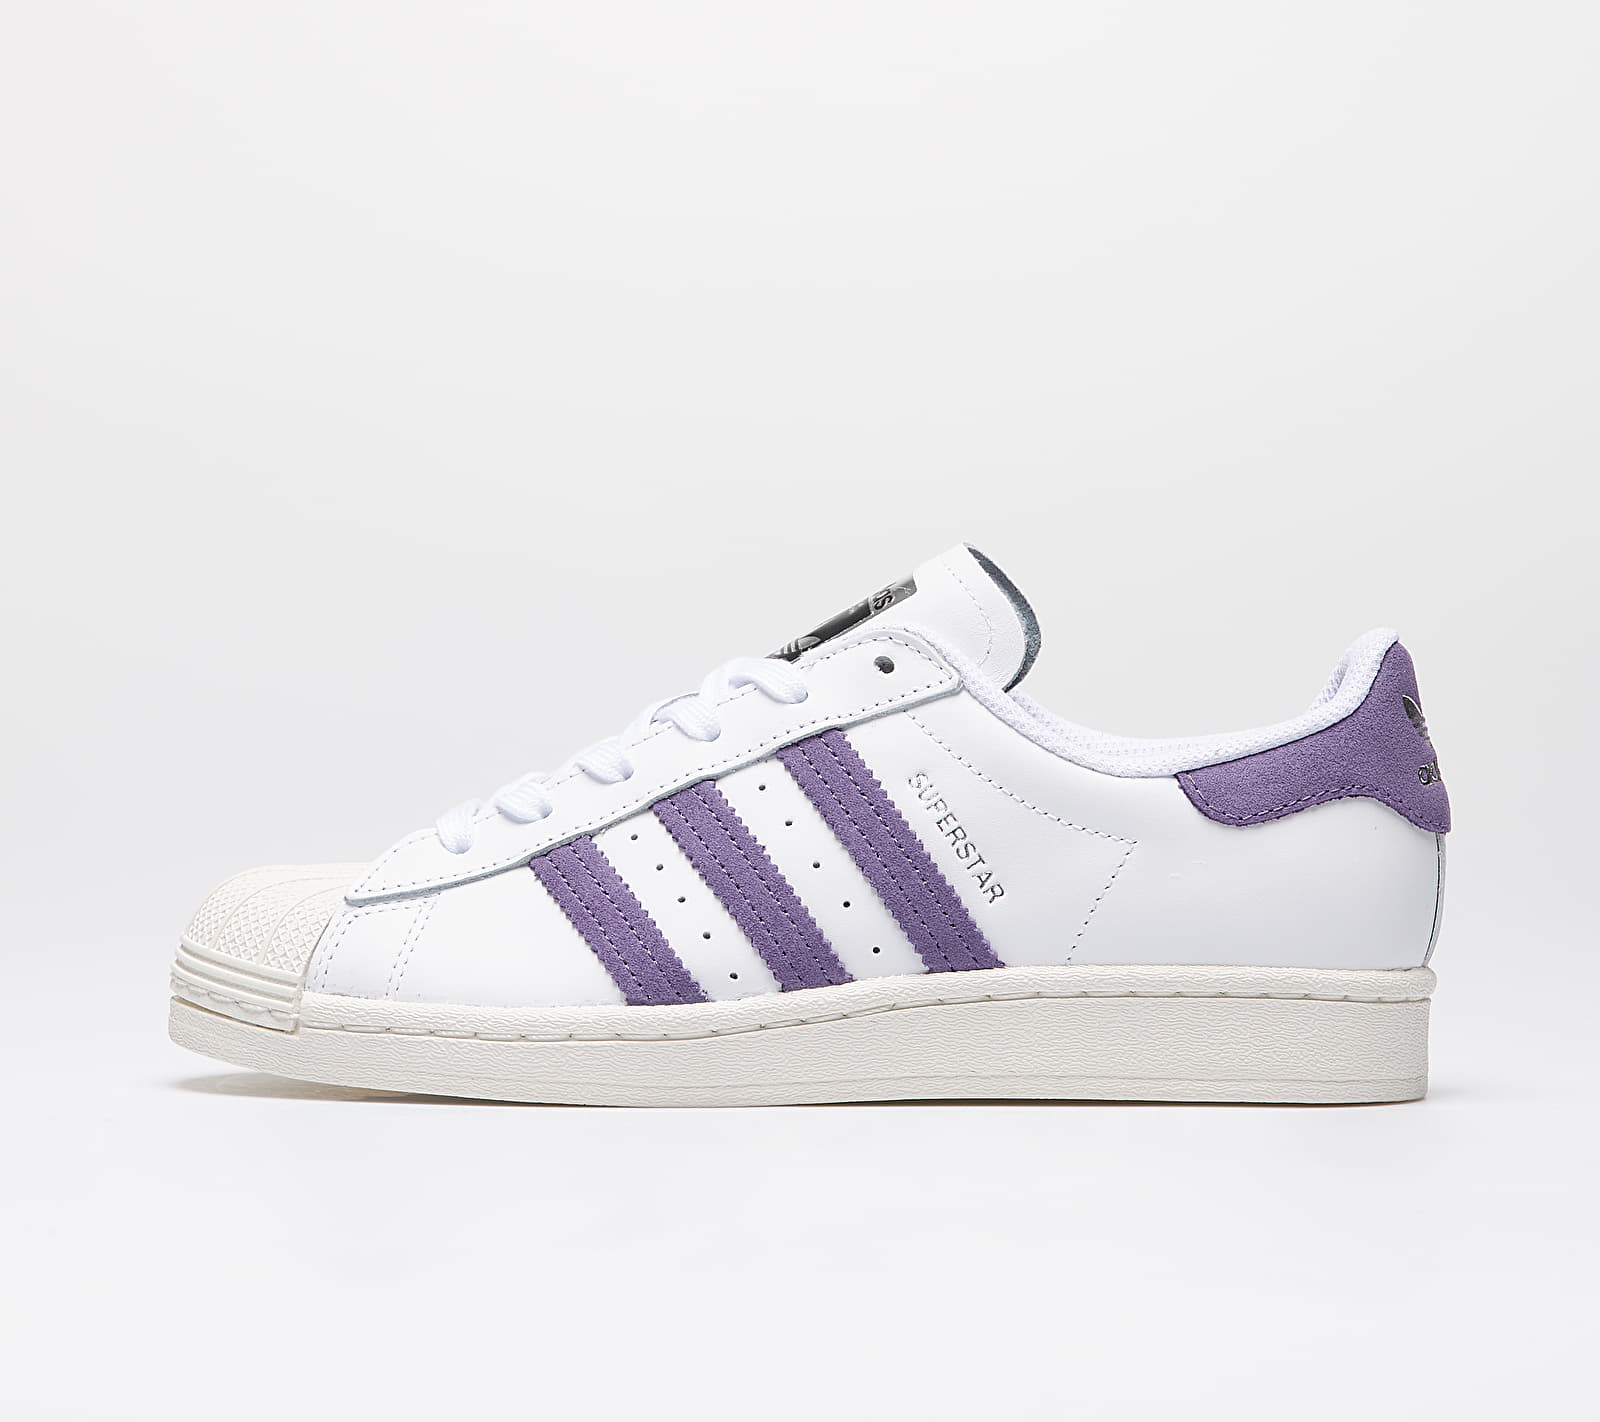 adidas Superstar W Ftw White/ Tech Purple/ Off White EUR 41 1/3